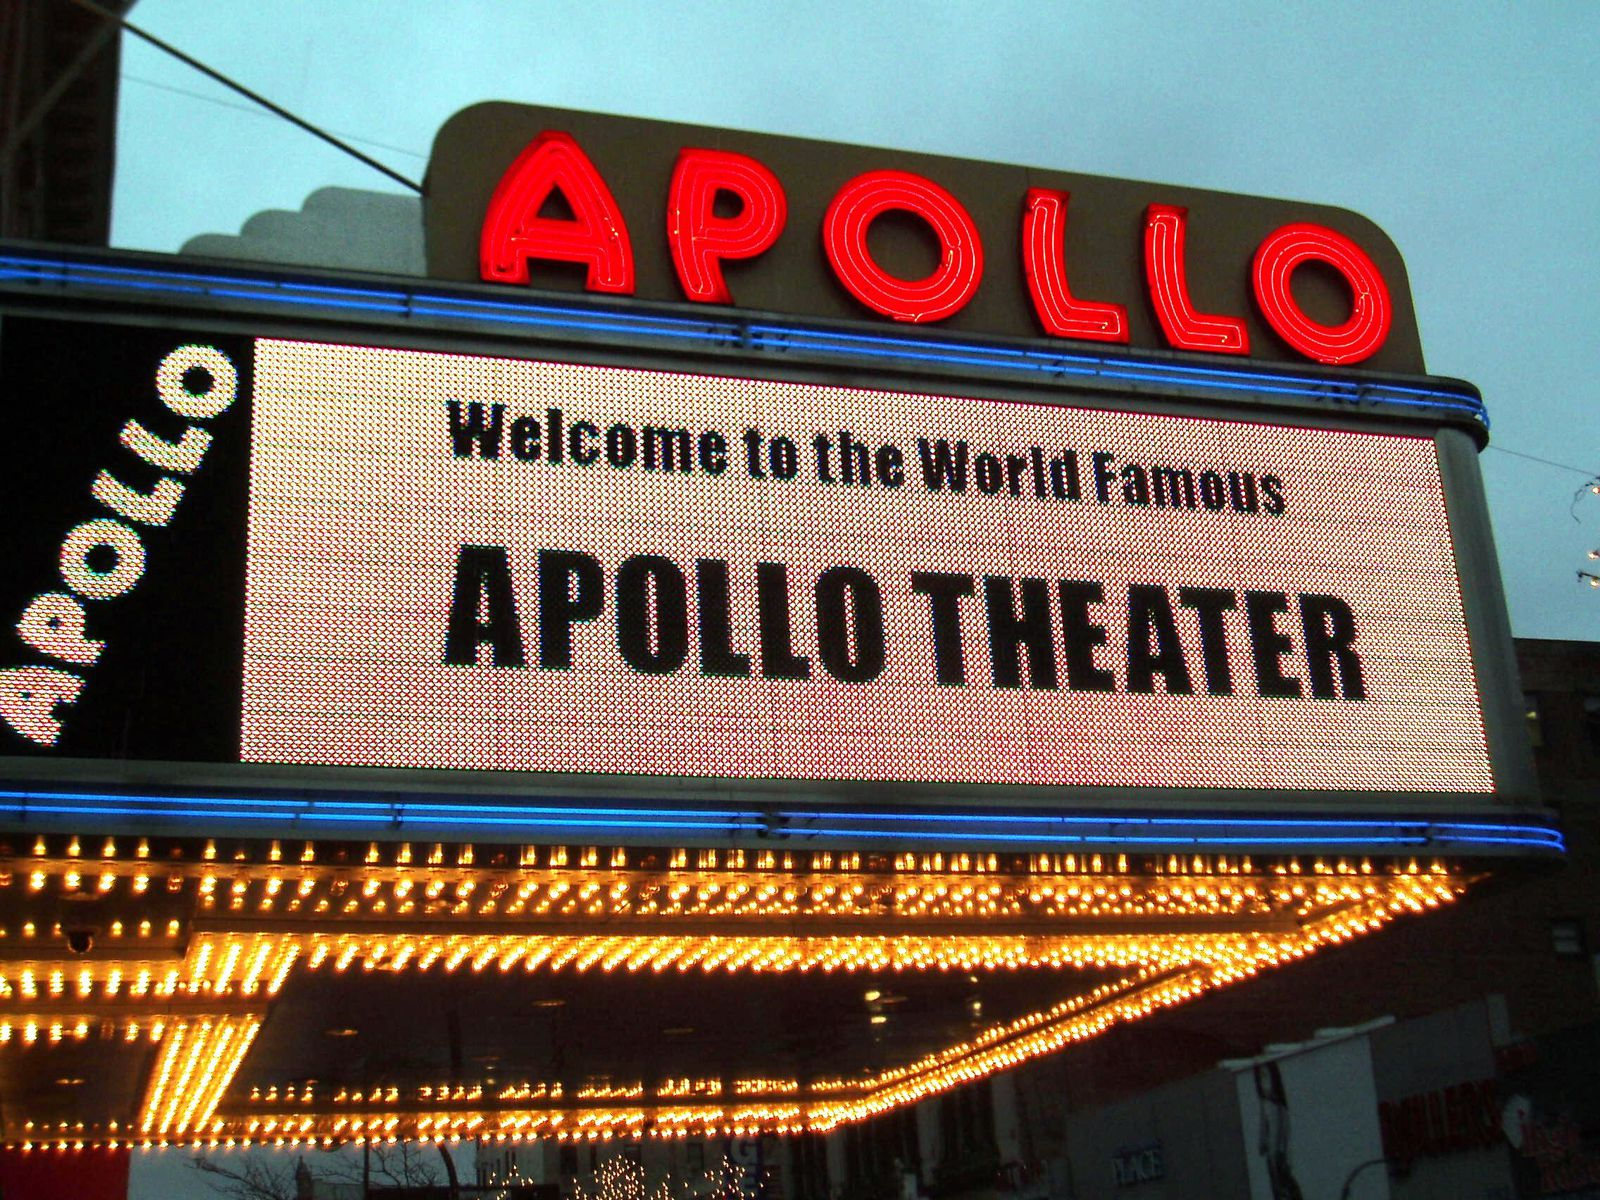 APOLLO-THEATER HARLEM